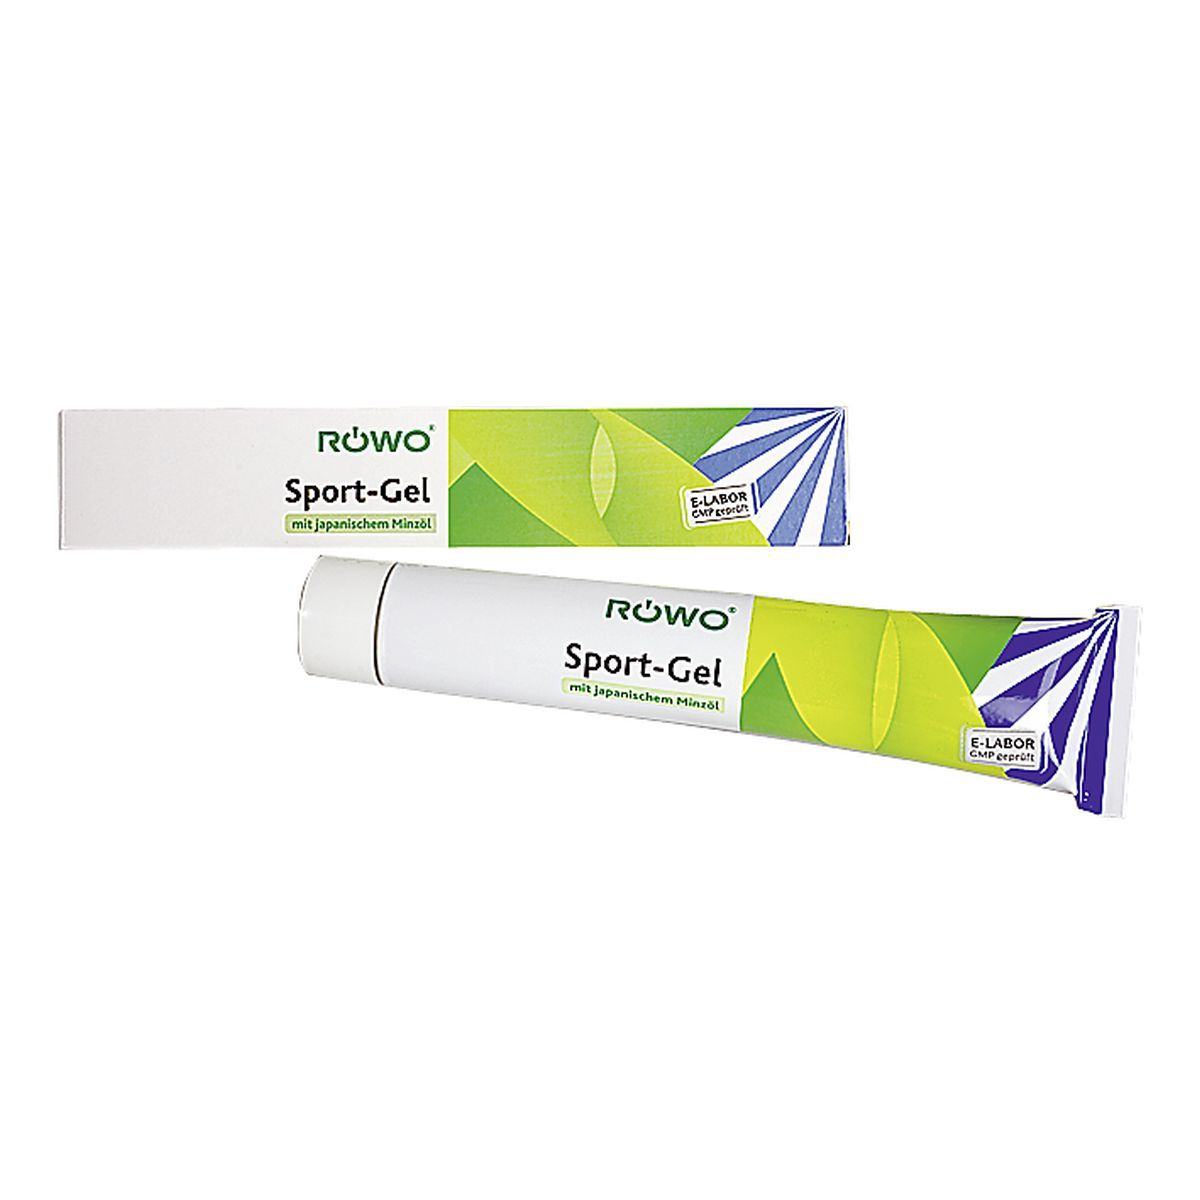 RÖWO-Sport-Gel 100 ml Tube